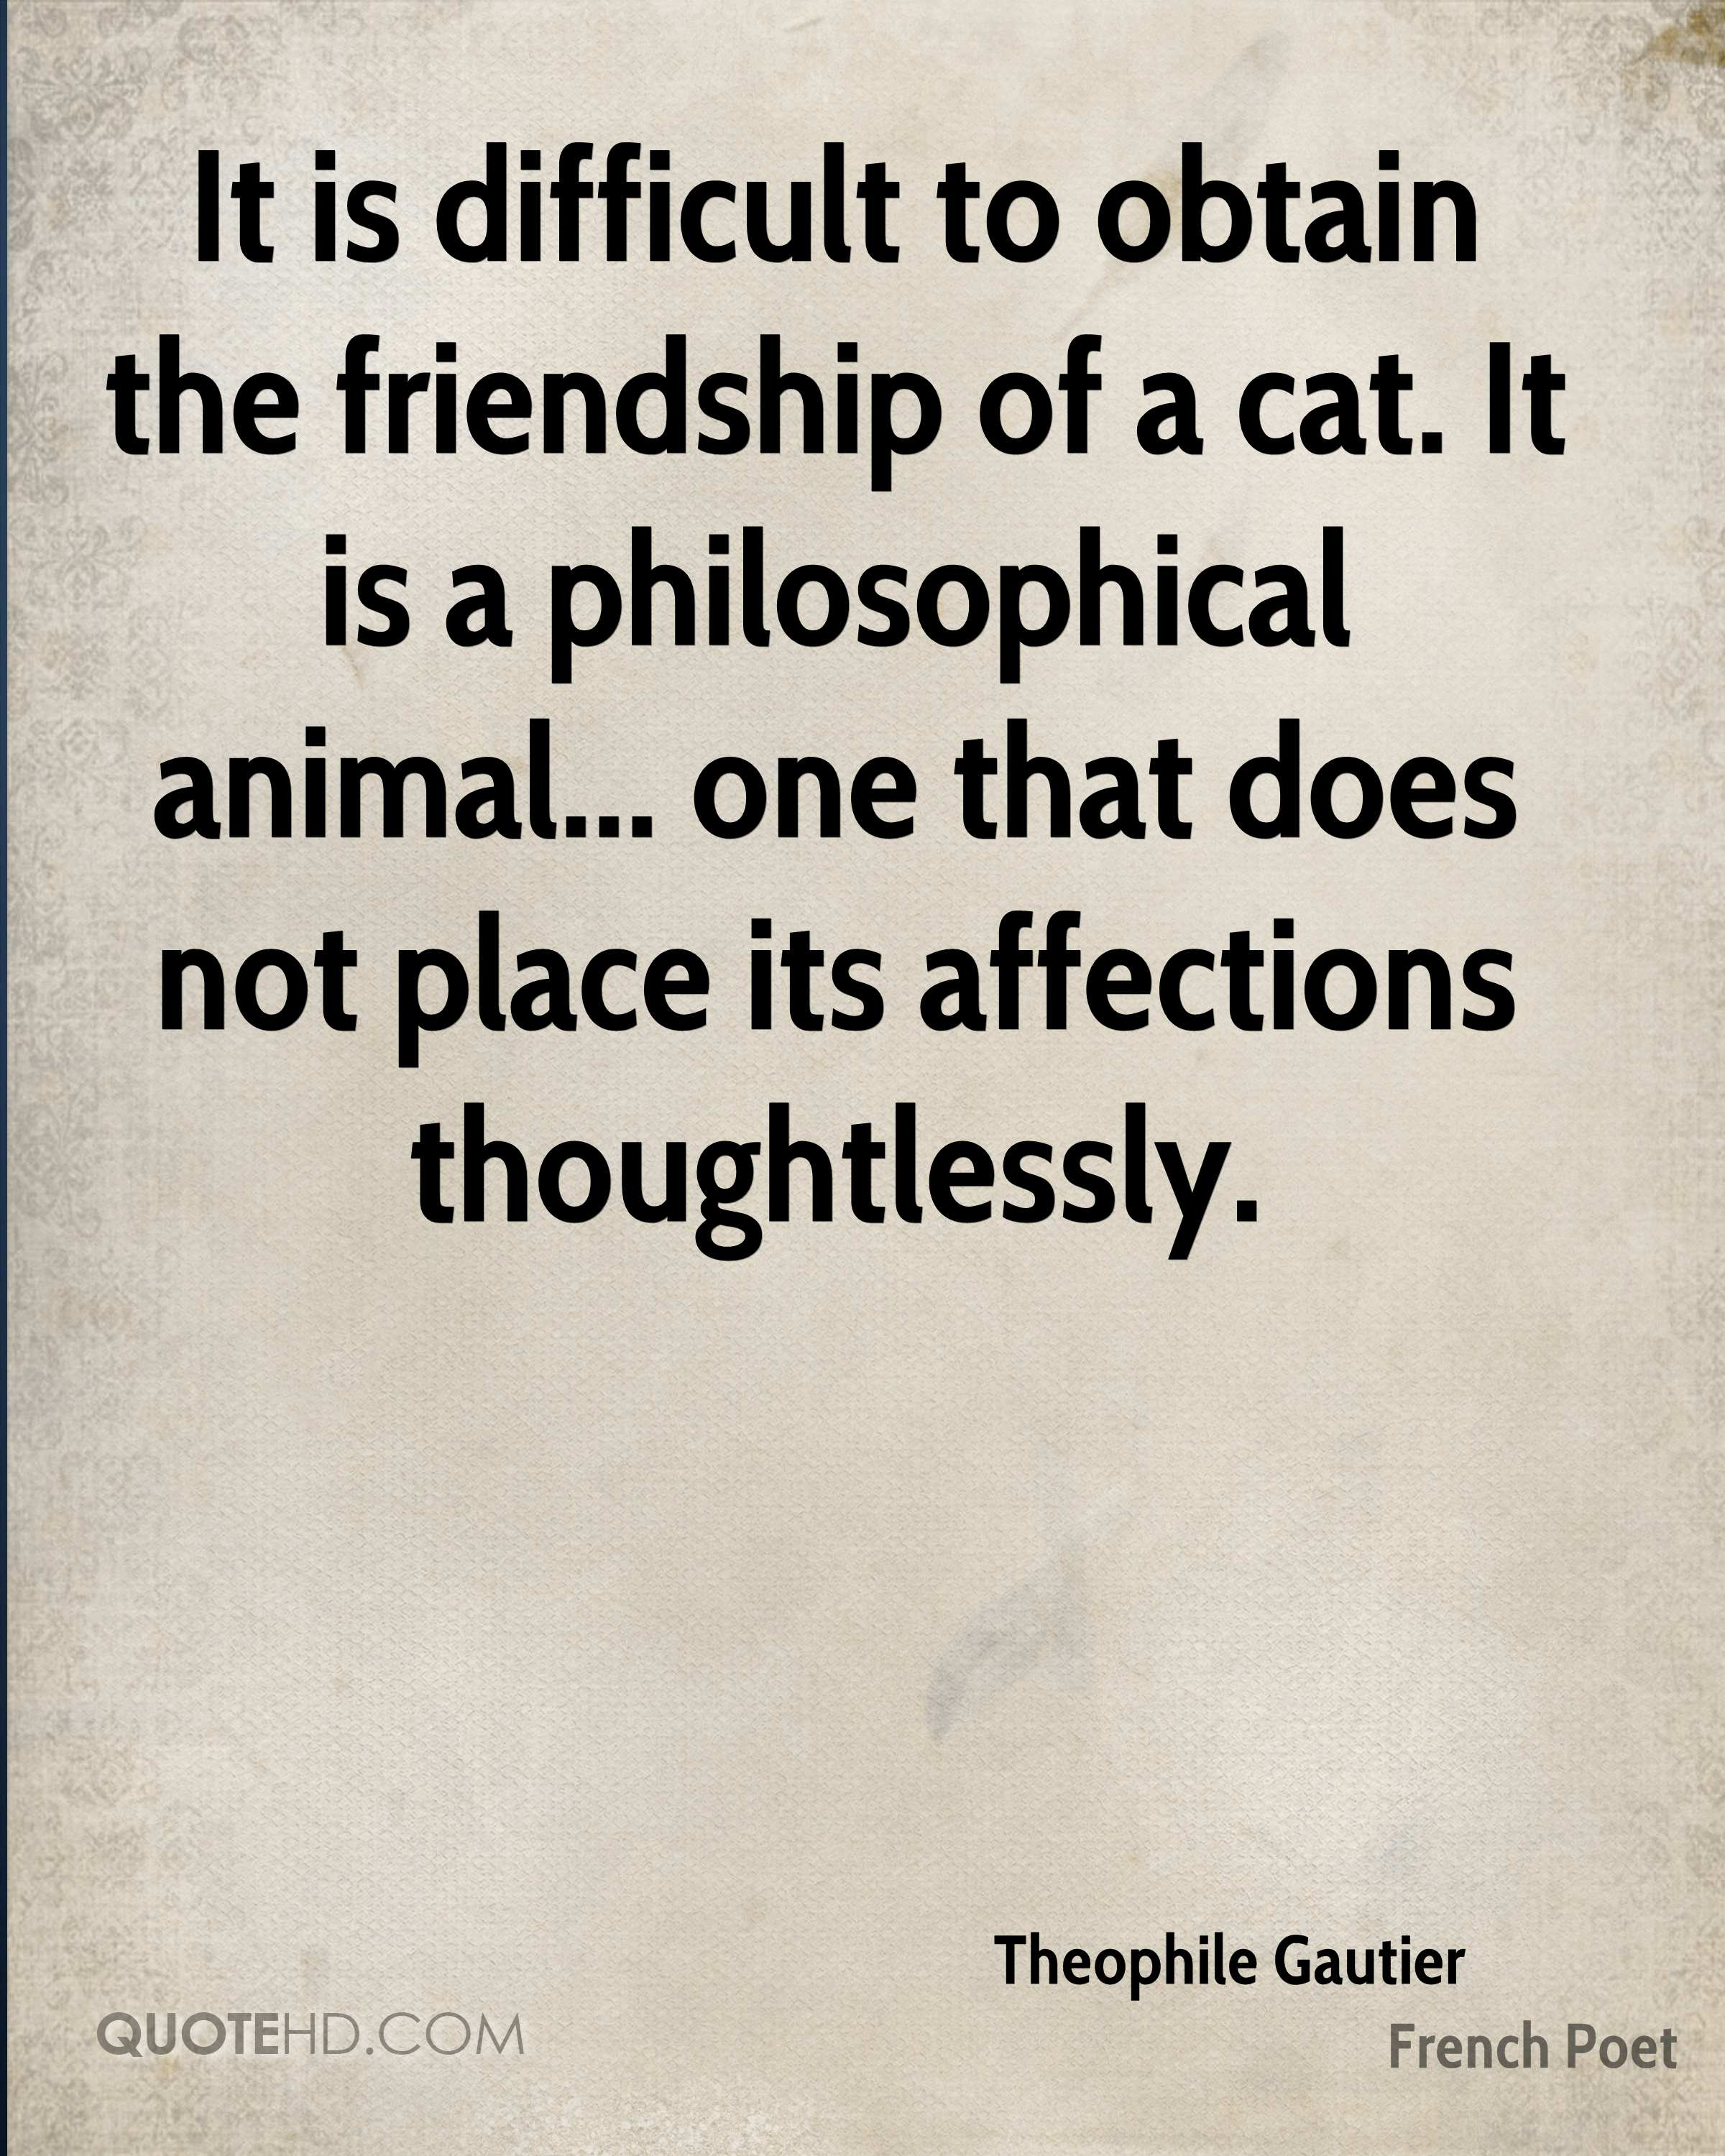 French Quotes About Friendship Theophile Gautier Friendship Quotes  Quotehd